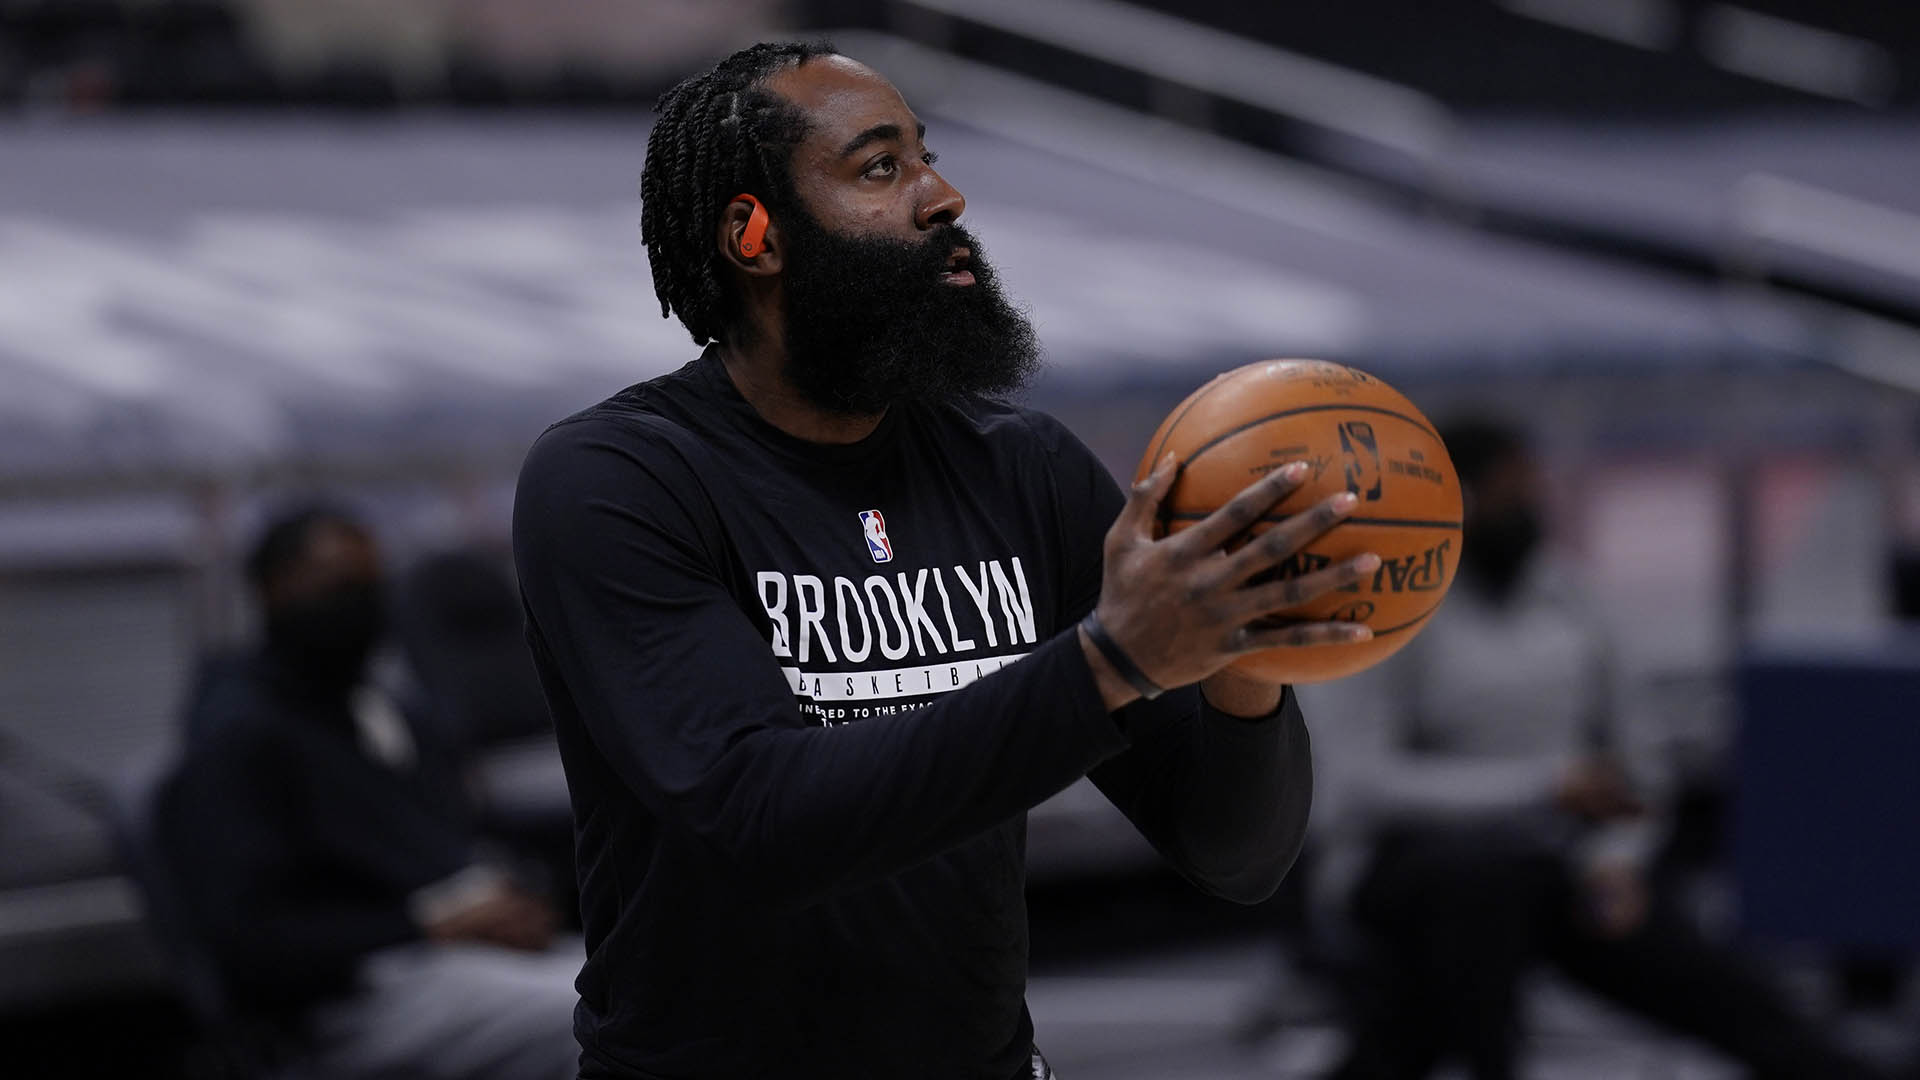 Report: James Harden plans to play against Spurs